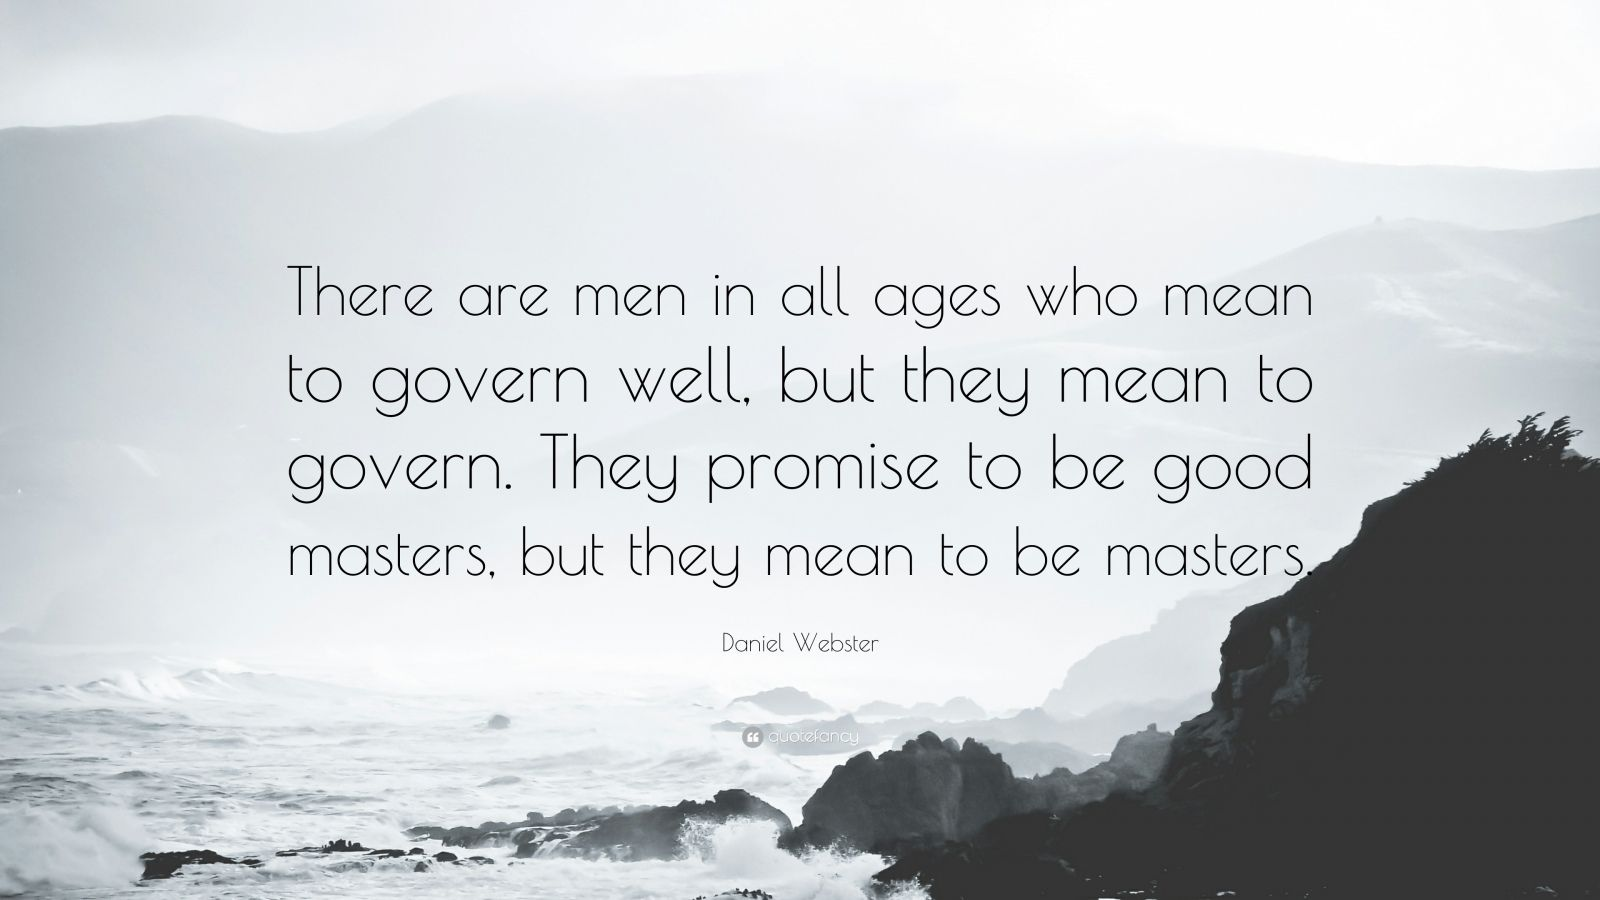 """Daniel Webster Quote: """"There are men in all ages who mean to govern well, but they mean to govern. They promise to be good masters, but they mean to be masters."""""""